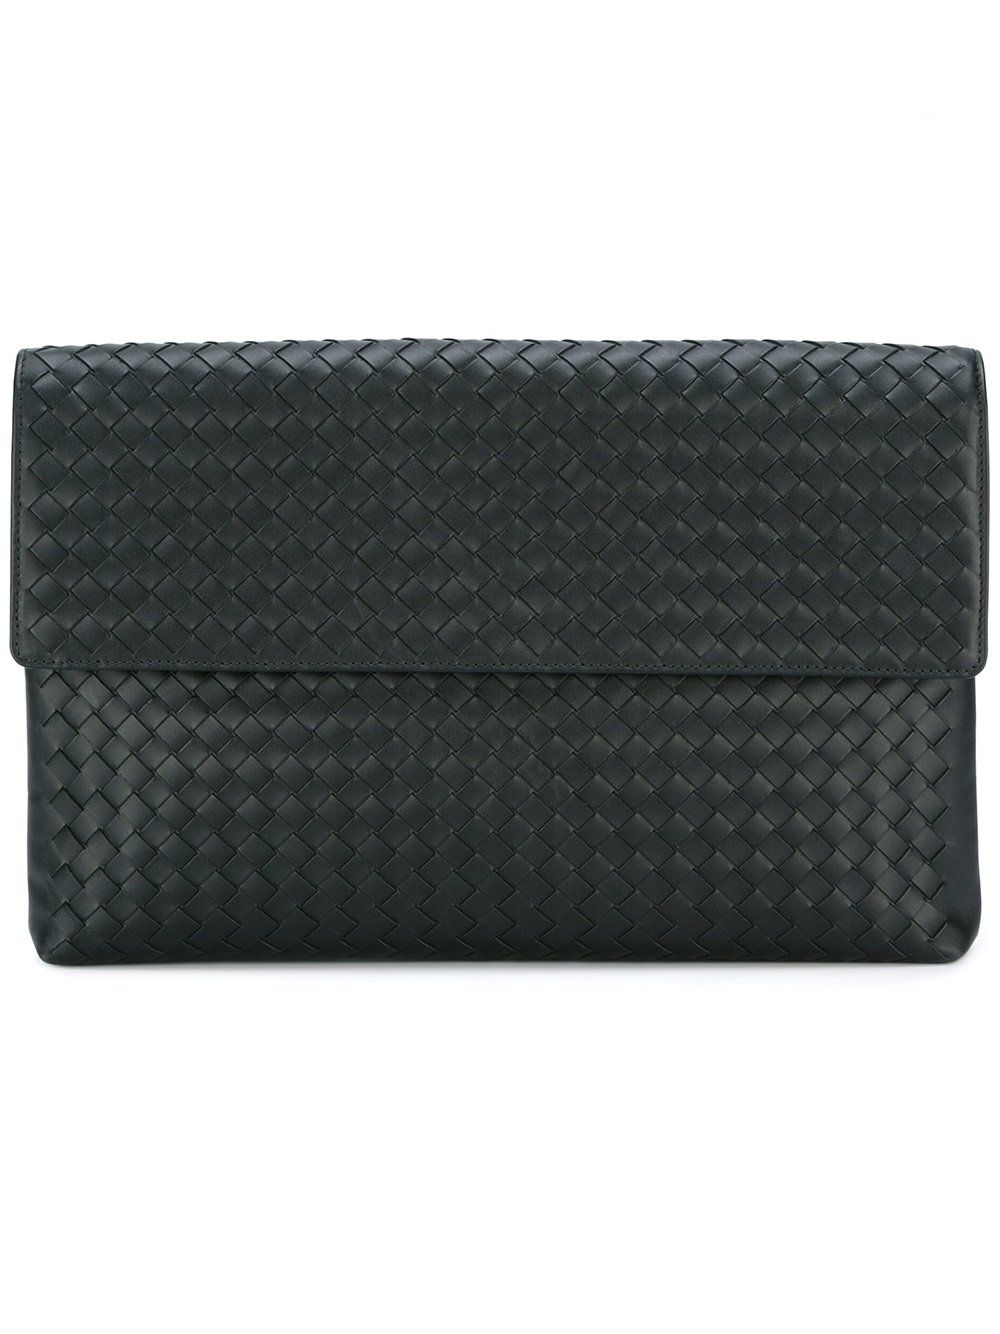 b7b183170b BOTTEGA VENETA .  bottegaveneta  bags  leather  clutch  hand bags ...